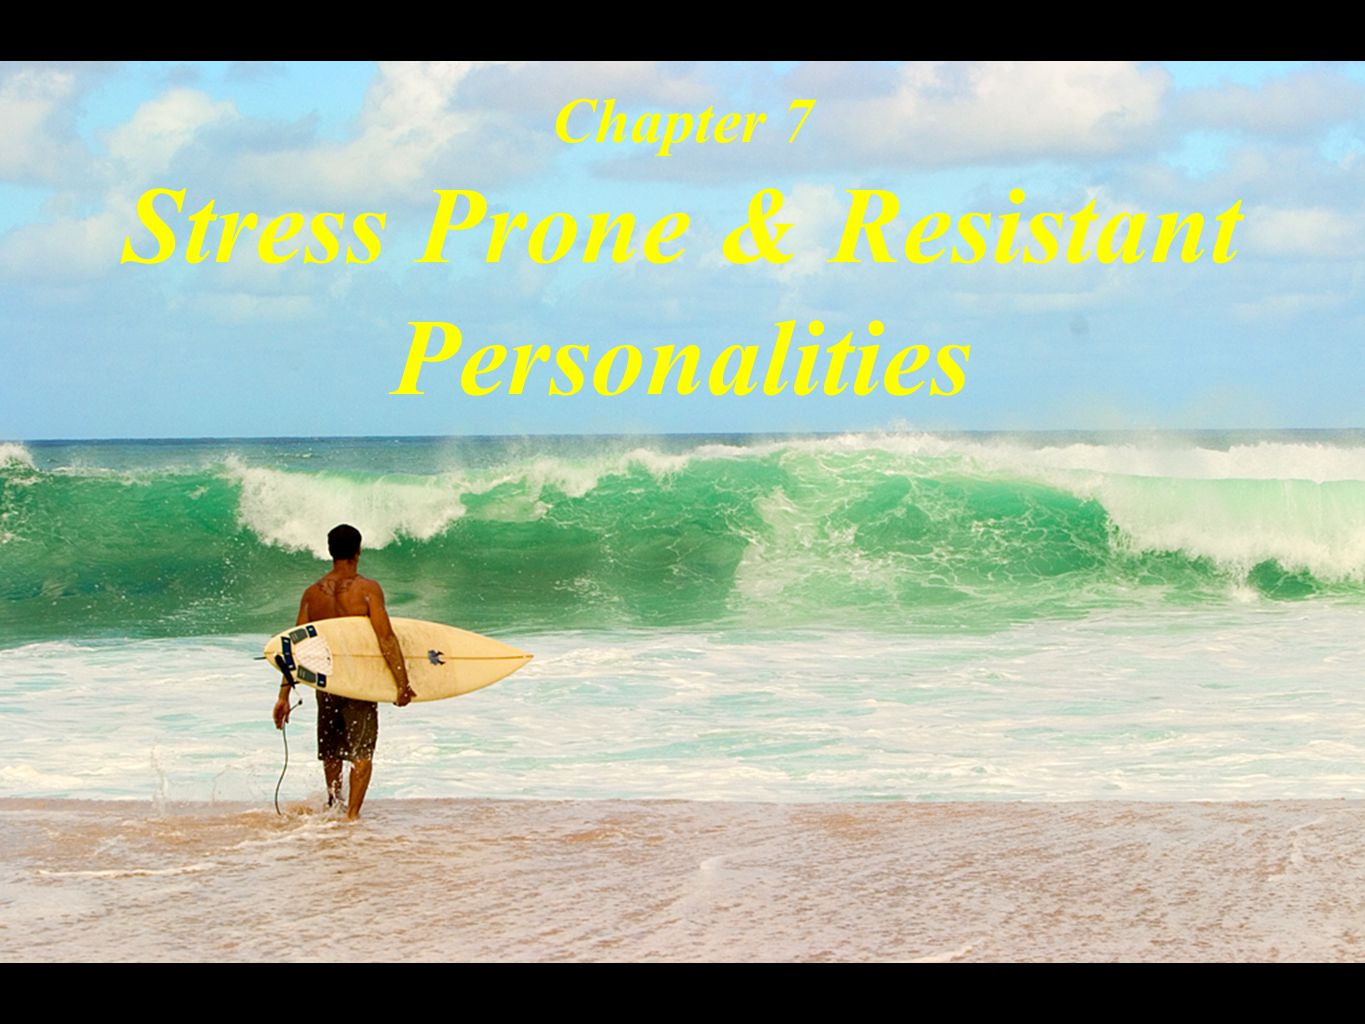 Chapter 7 Stress Prone & Resistant Personalities